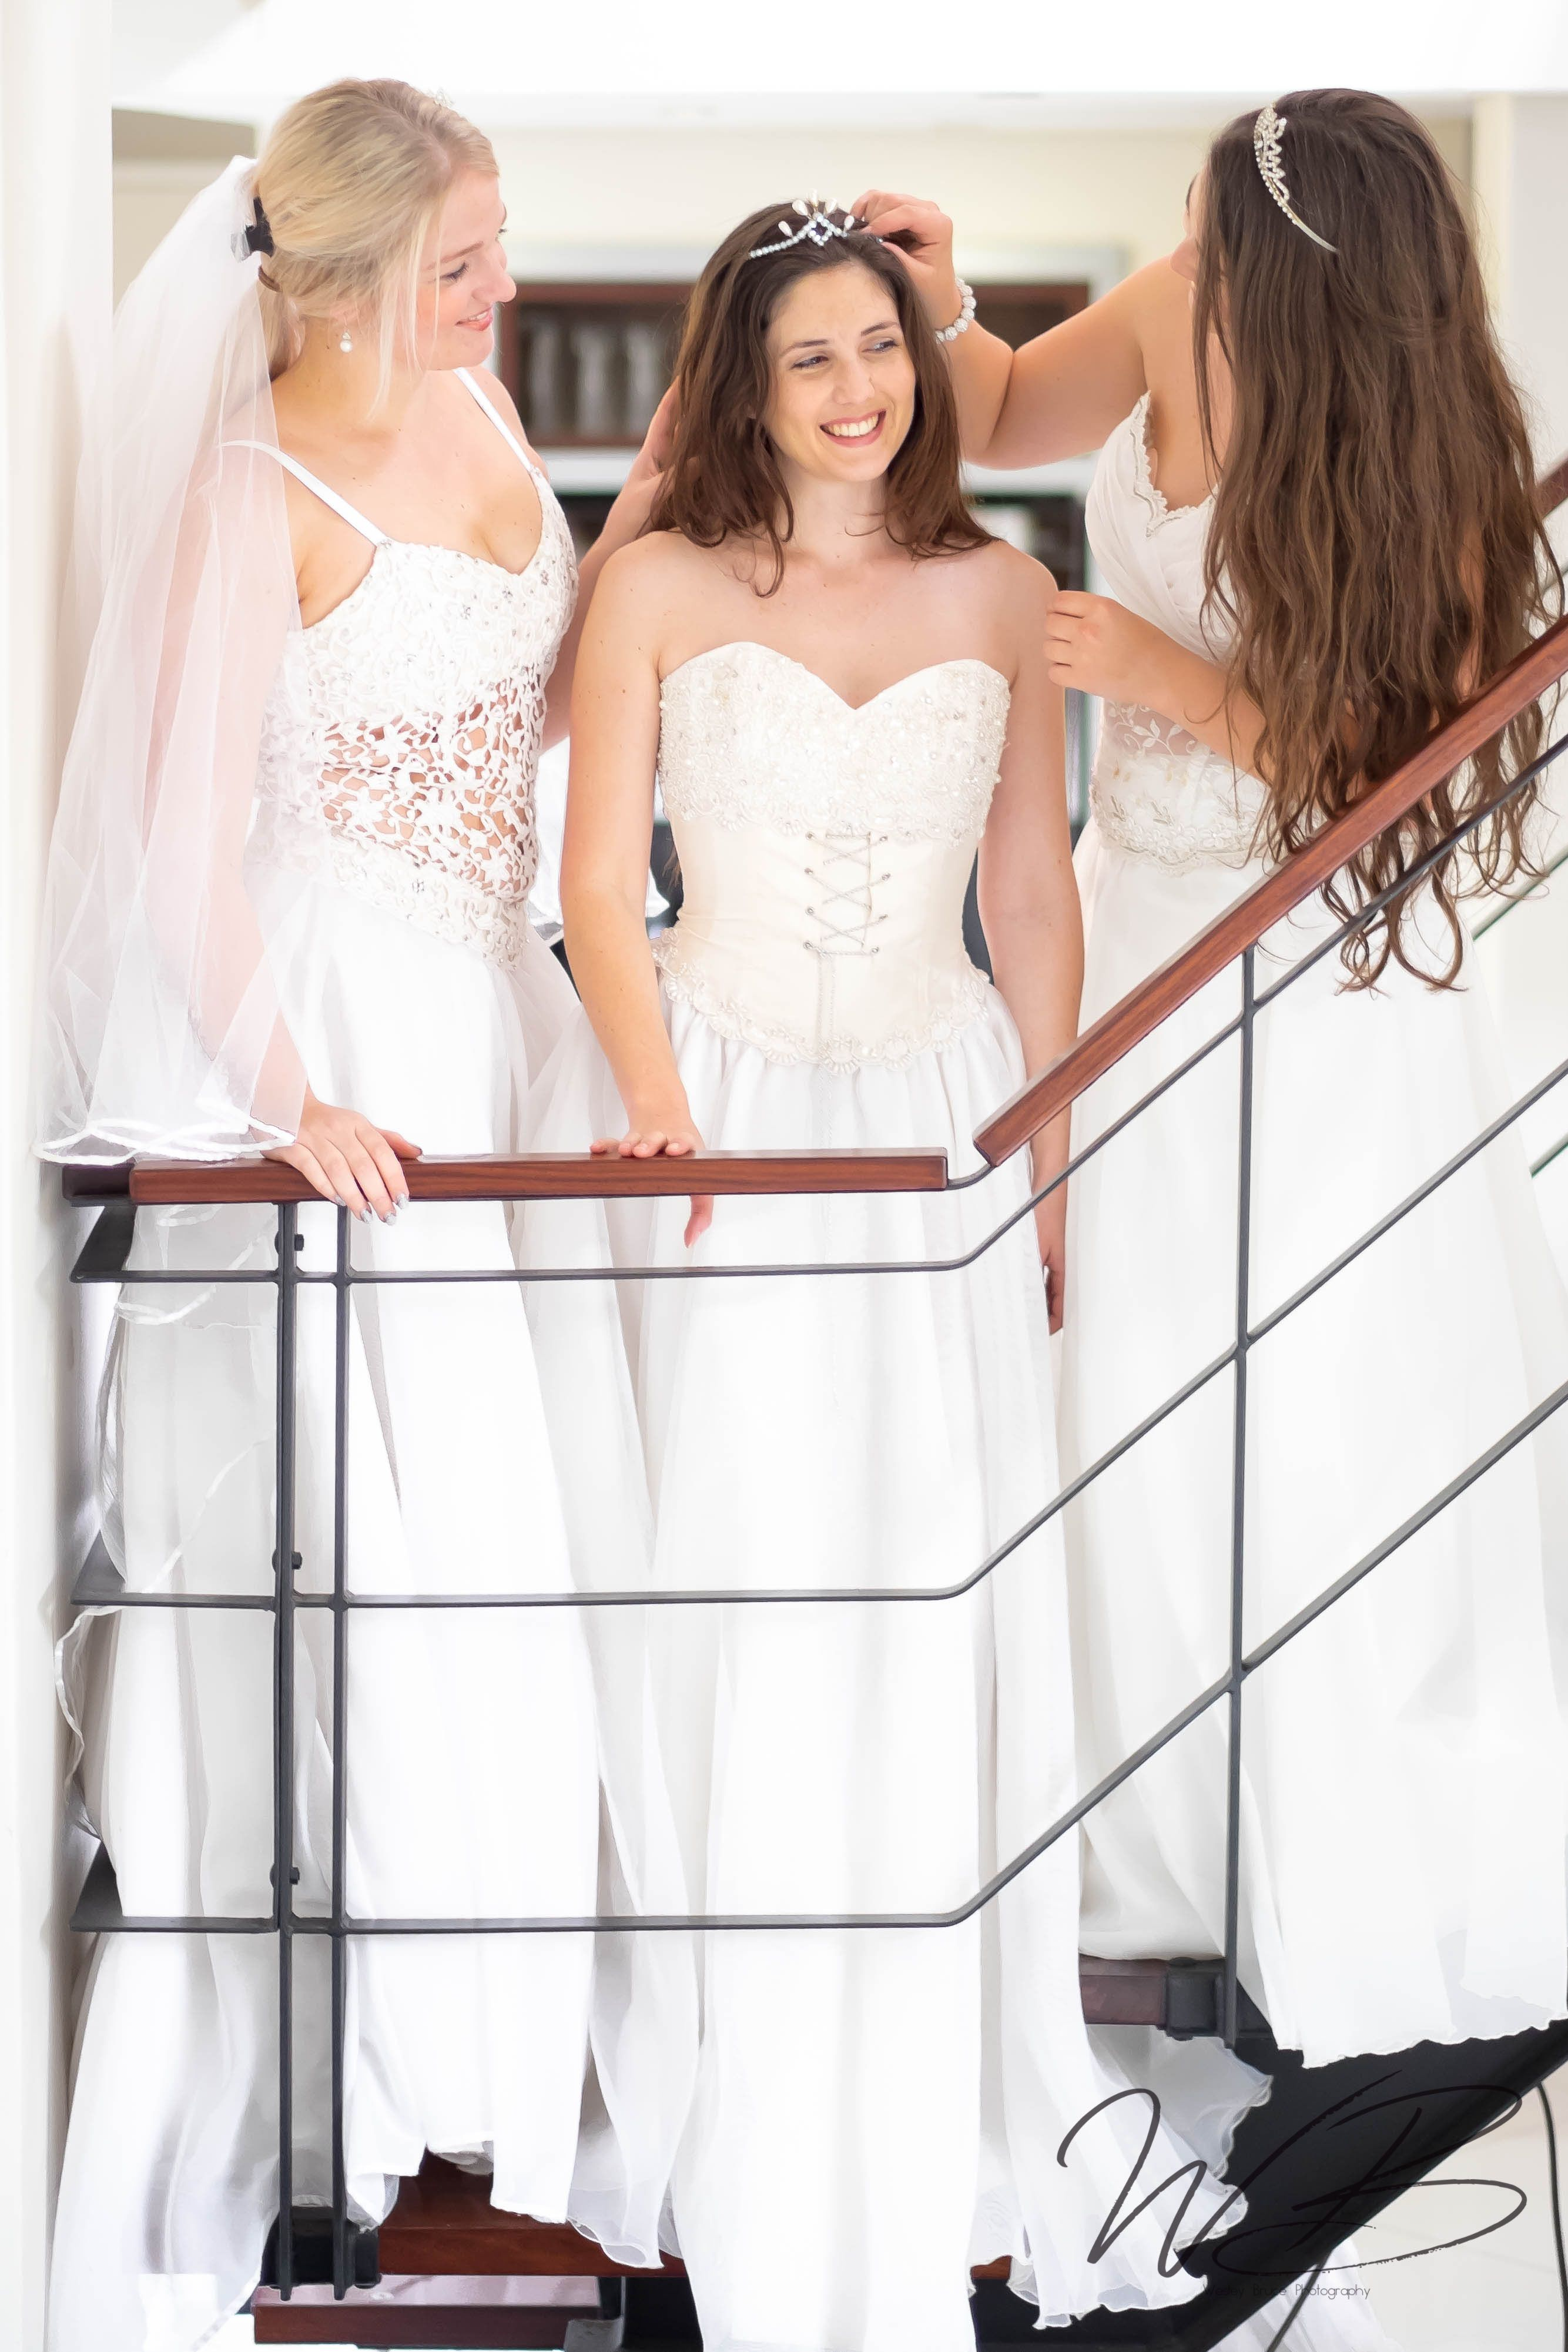 Catherine anns designs in port elizabeth south africa offers a south africa offers a variety of wedding dresses bridesmaids dresses matric farewell gowns and mother of the bride outfits hire or purchase ombrellifo Image collections